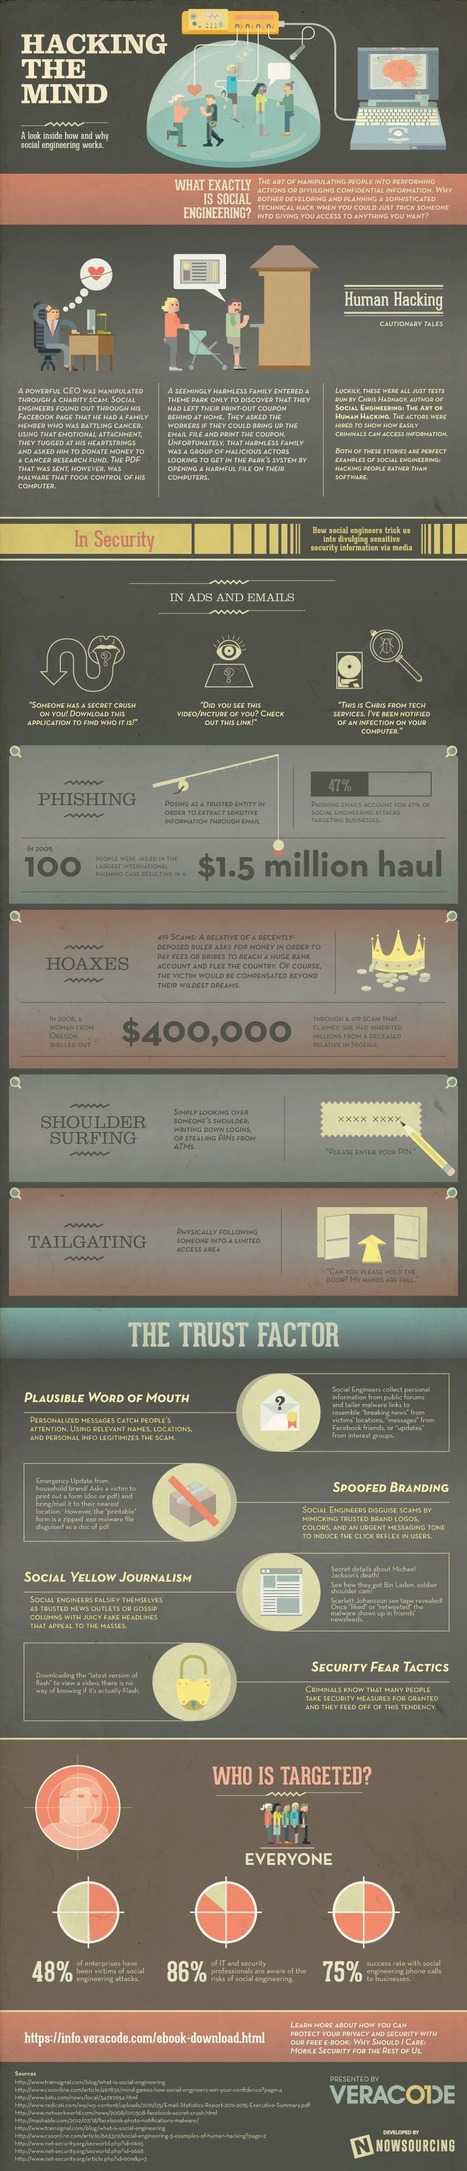 How and Why Social Engineering Works [Infographic] | Better know and better use Social Media today (facebook, twitter...) | Scoop.it